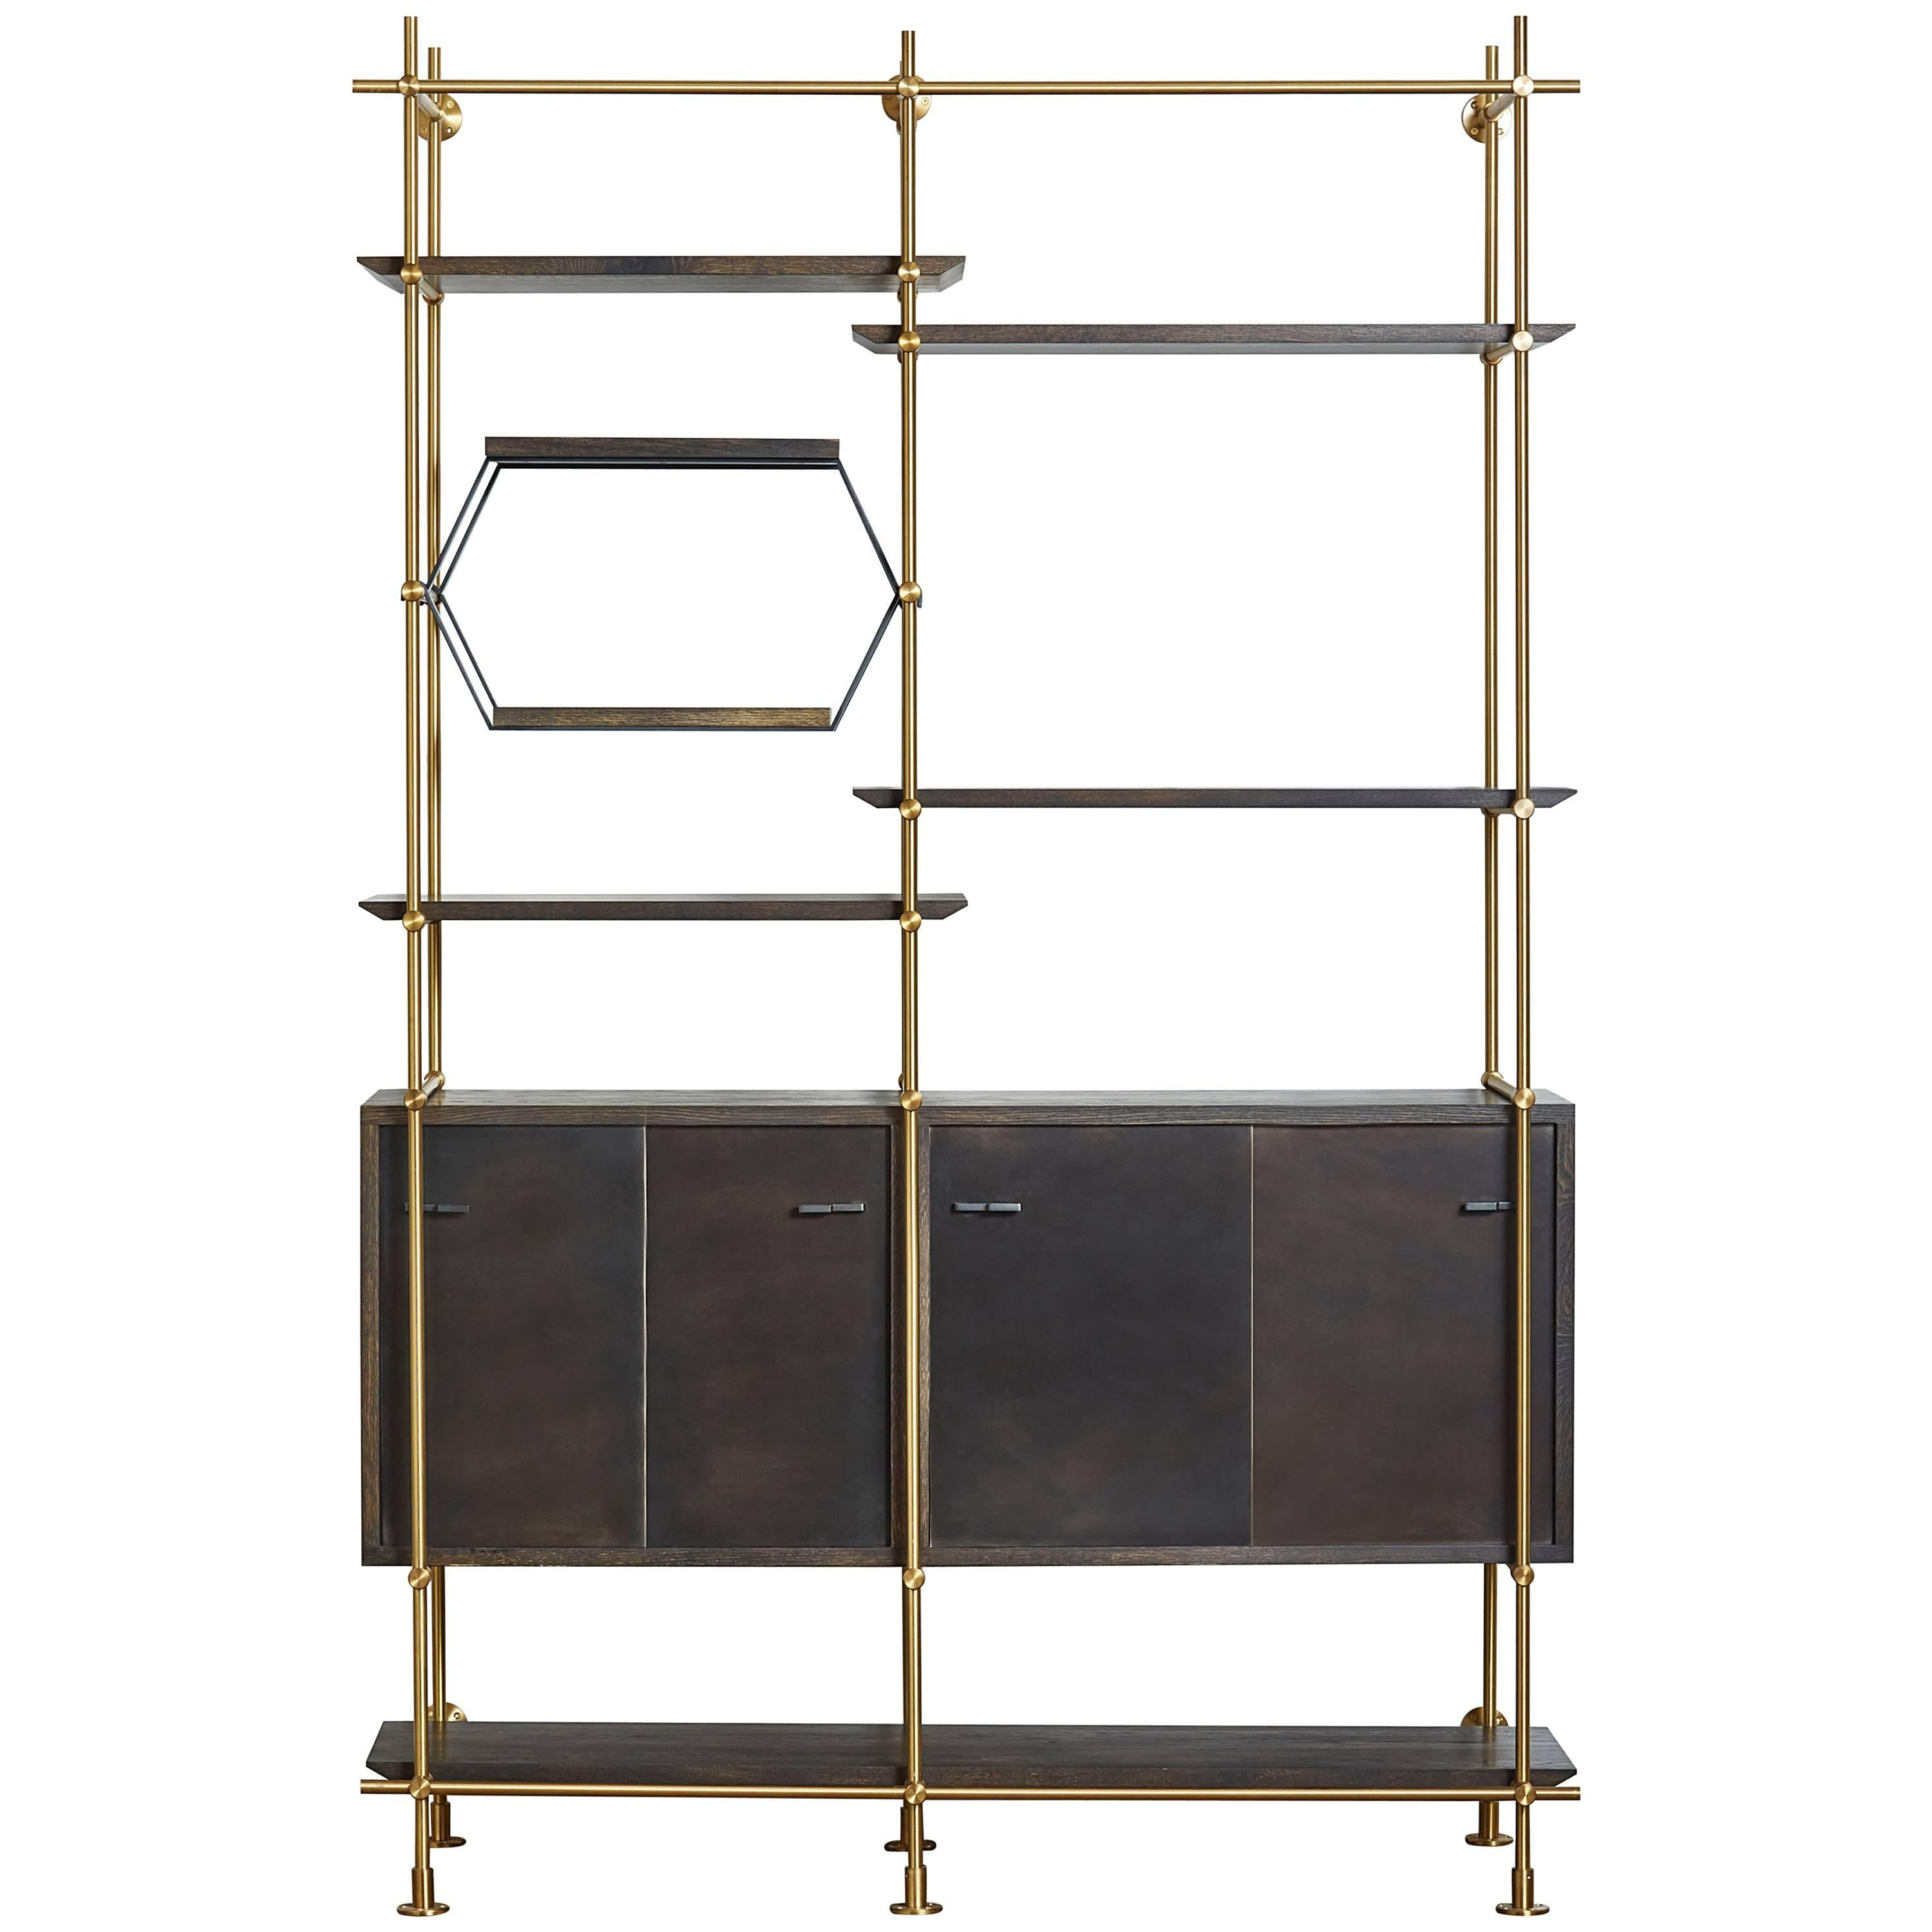 two bay brass shelving unit with oxidized oak credenza and shelves